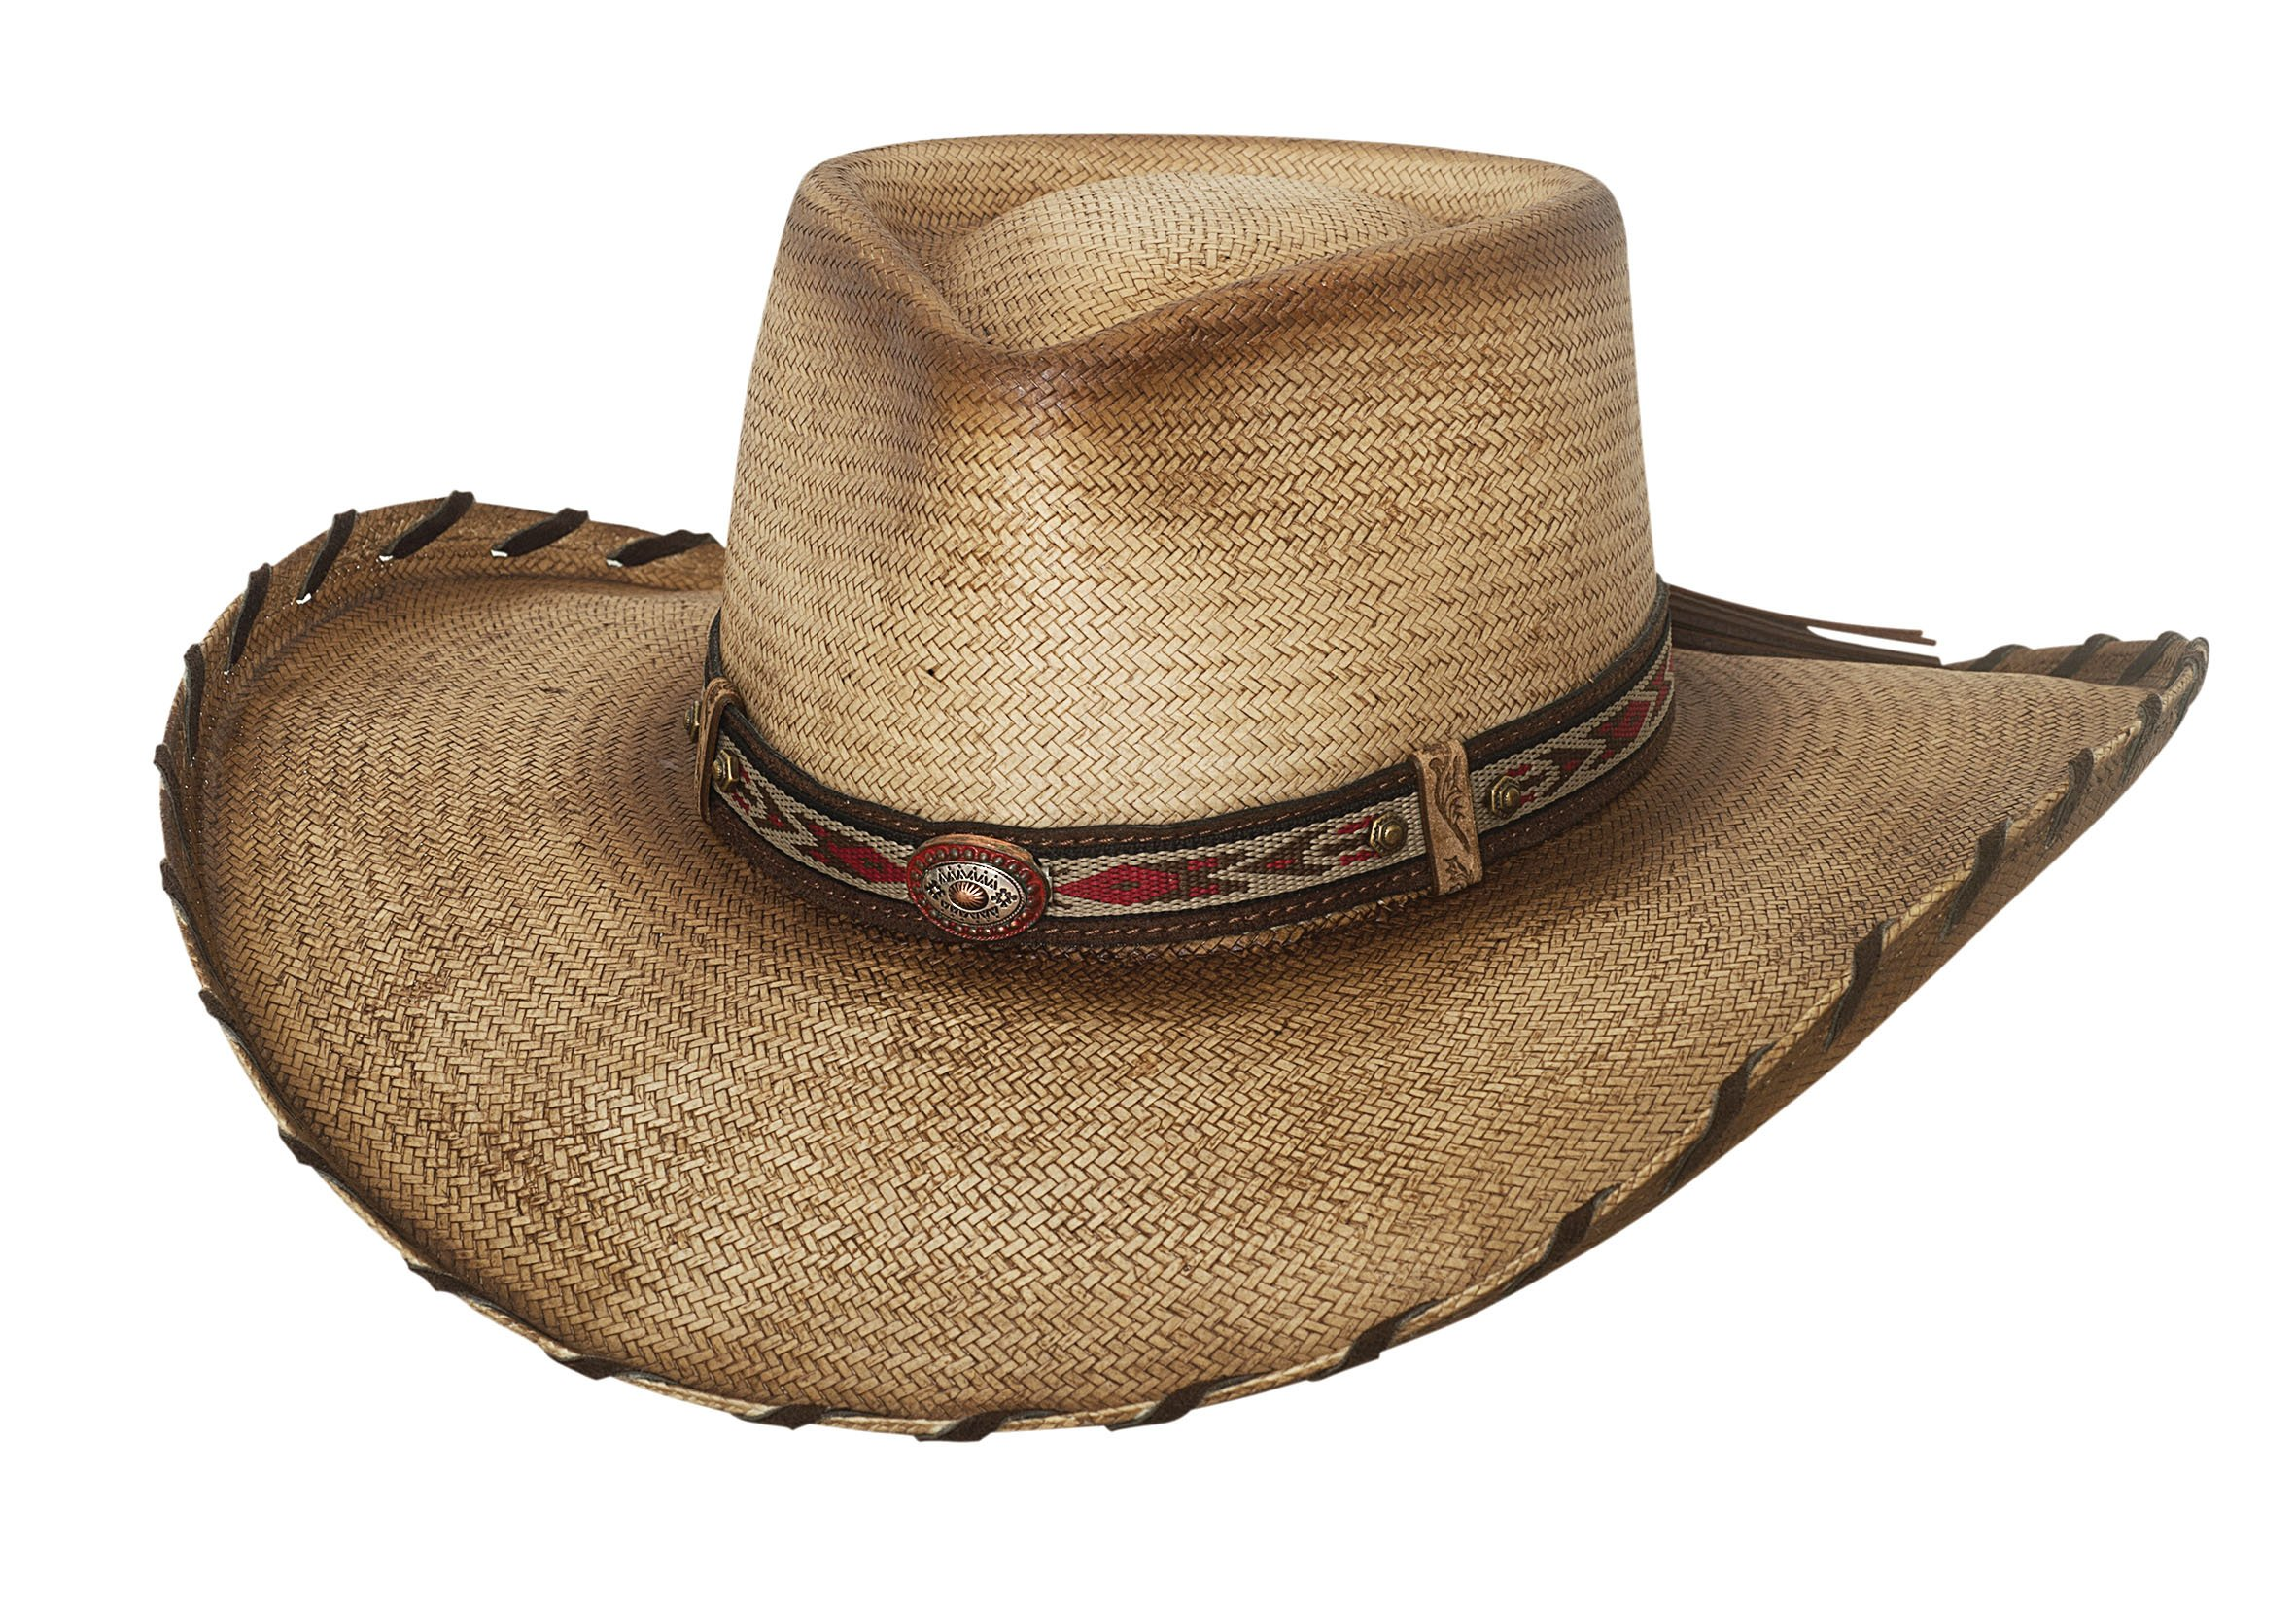 Bullhide Good Company - Straw Cowboy Hat (Small) by Bullhide Hats (Image #1)